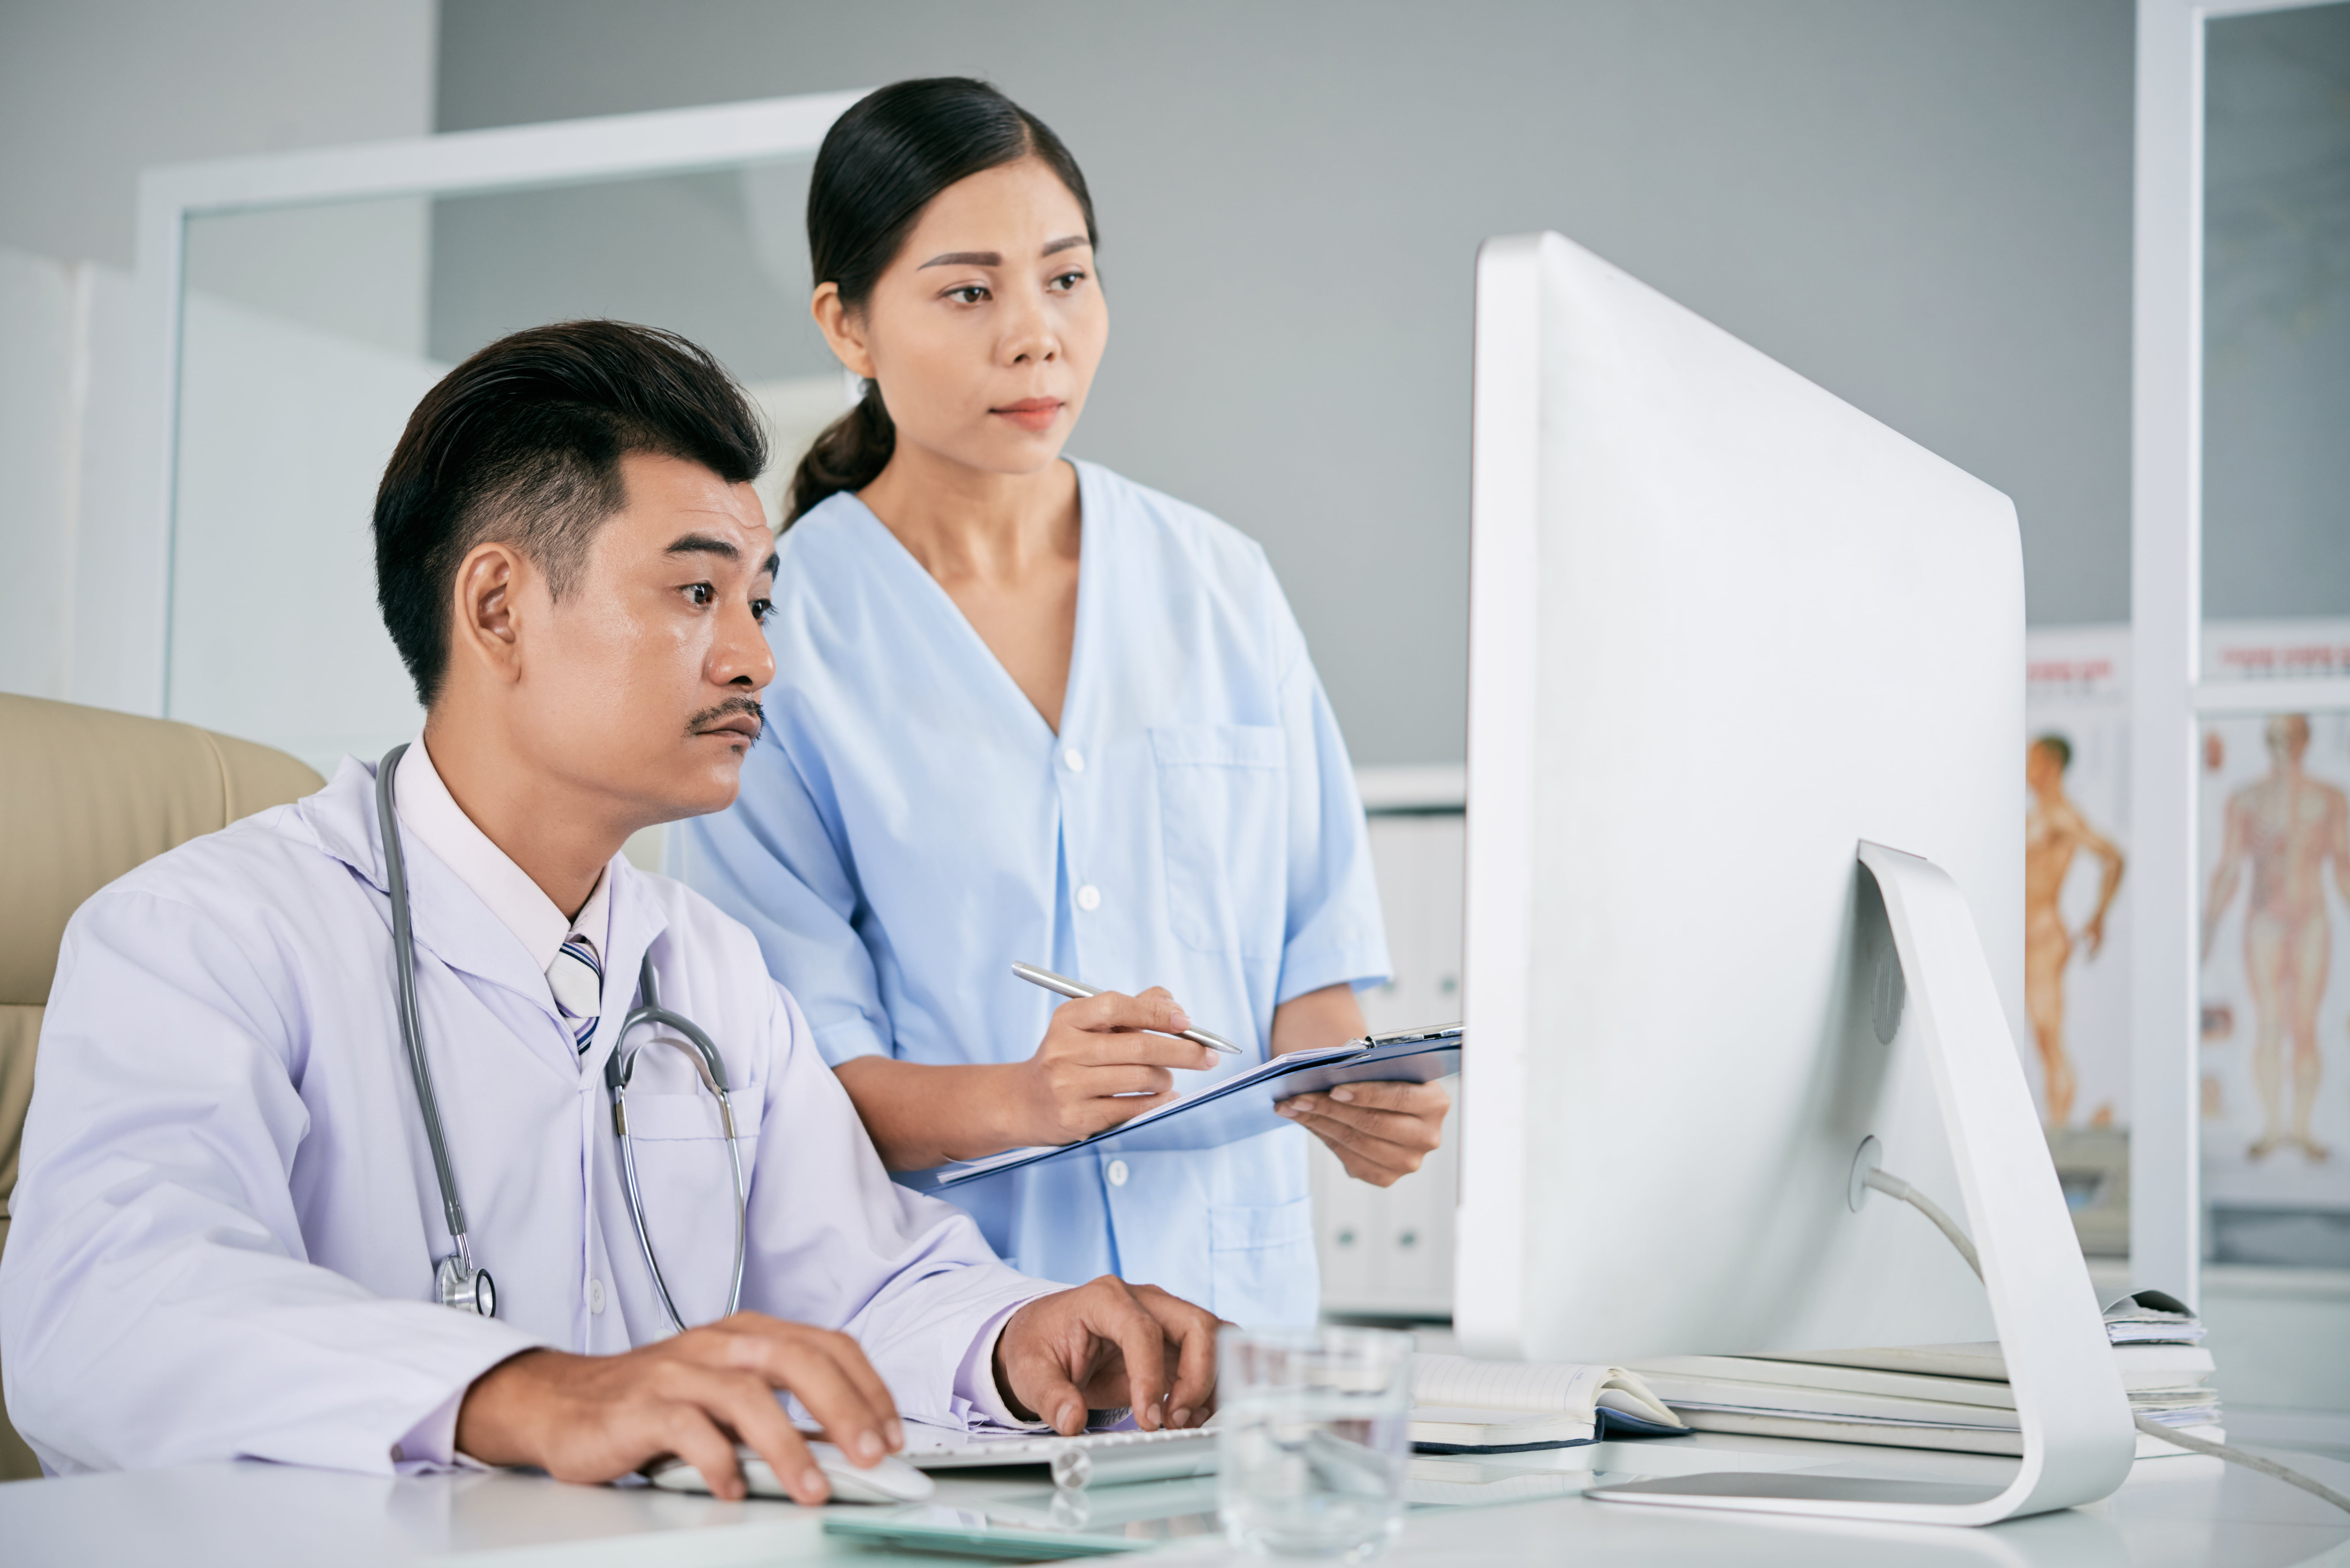 Remote Physiological Monitoring is Here to Stay and Remote Therapeutic Monitoring (RTM) Doubles Remote Monitoring Reimbursement for 2022